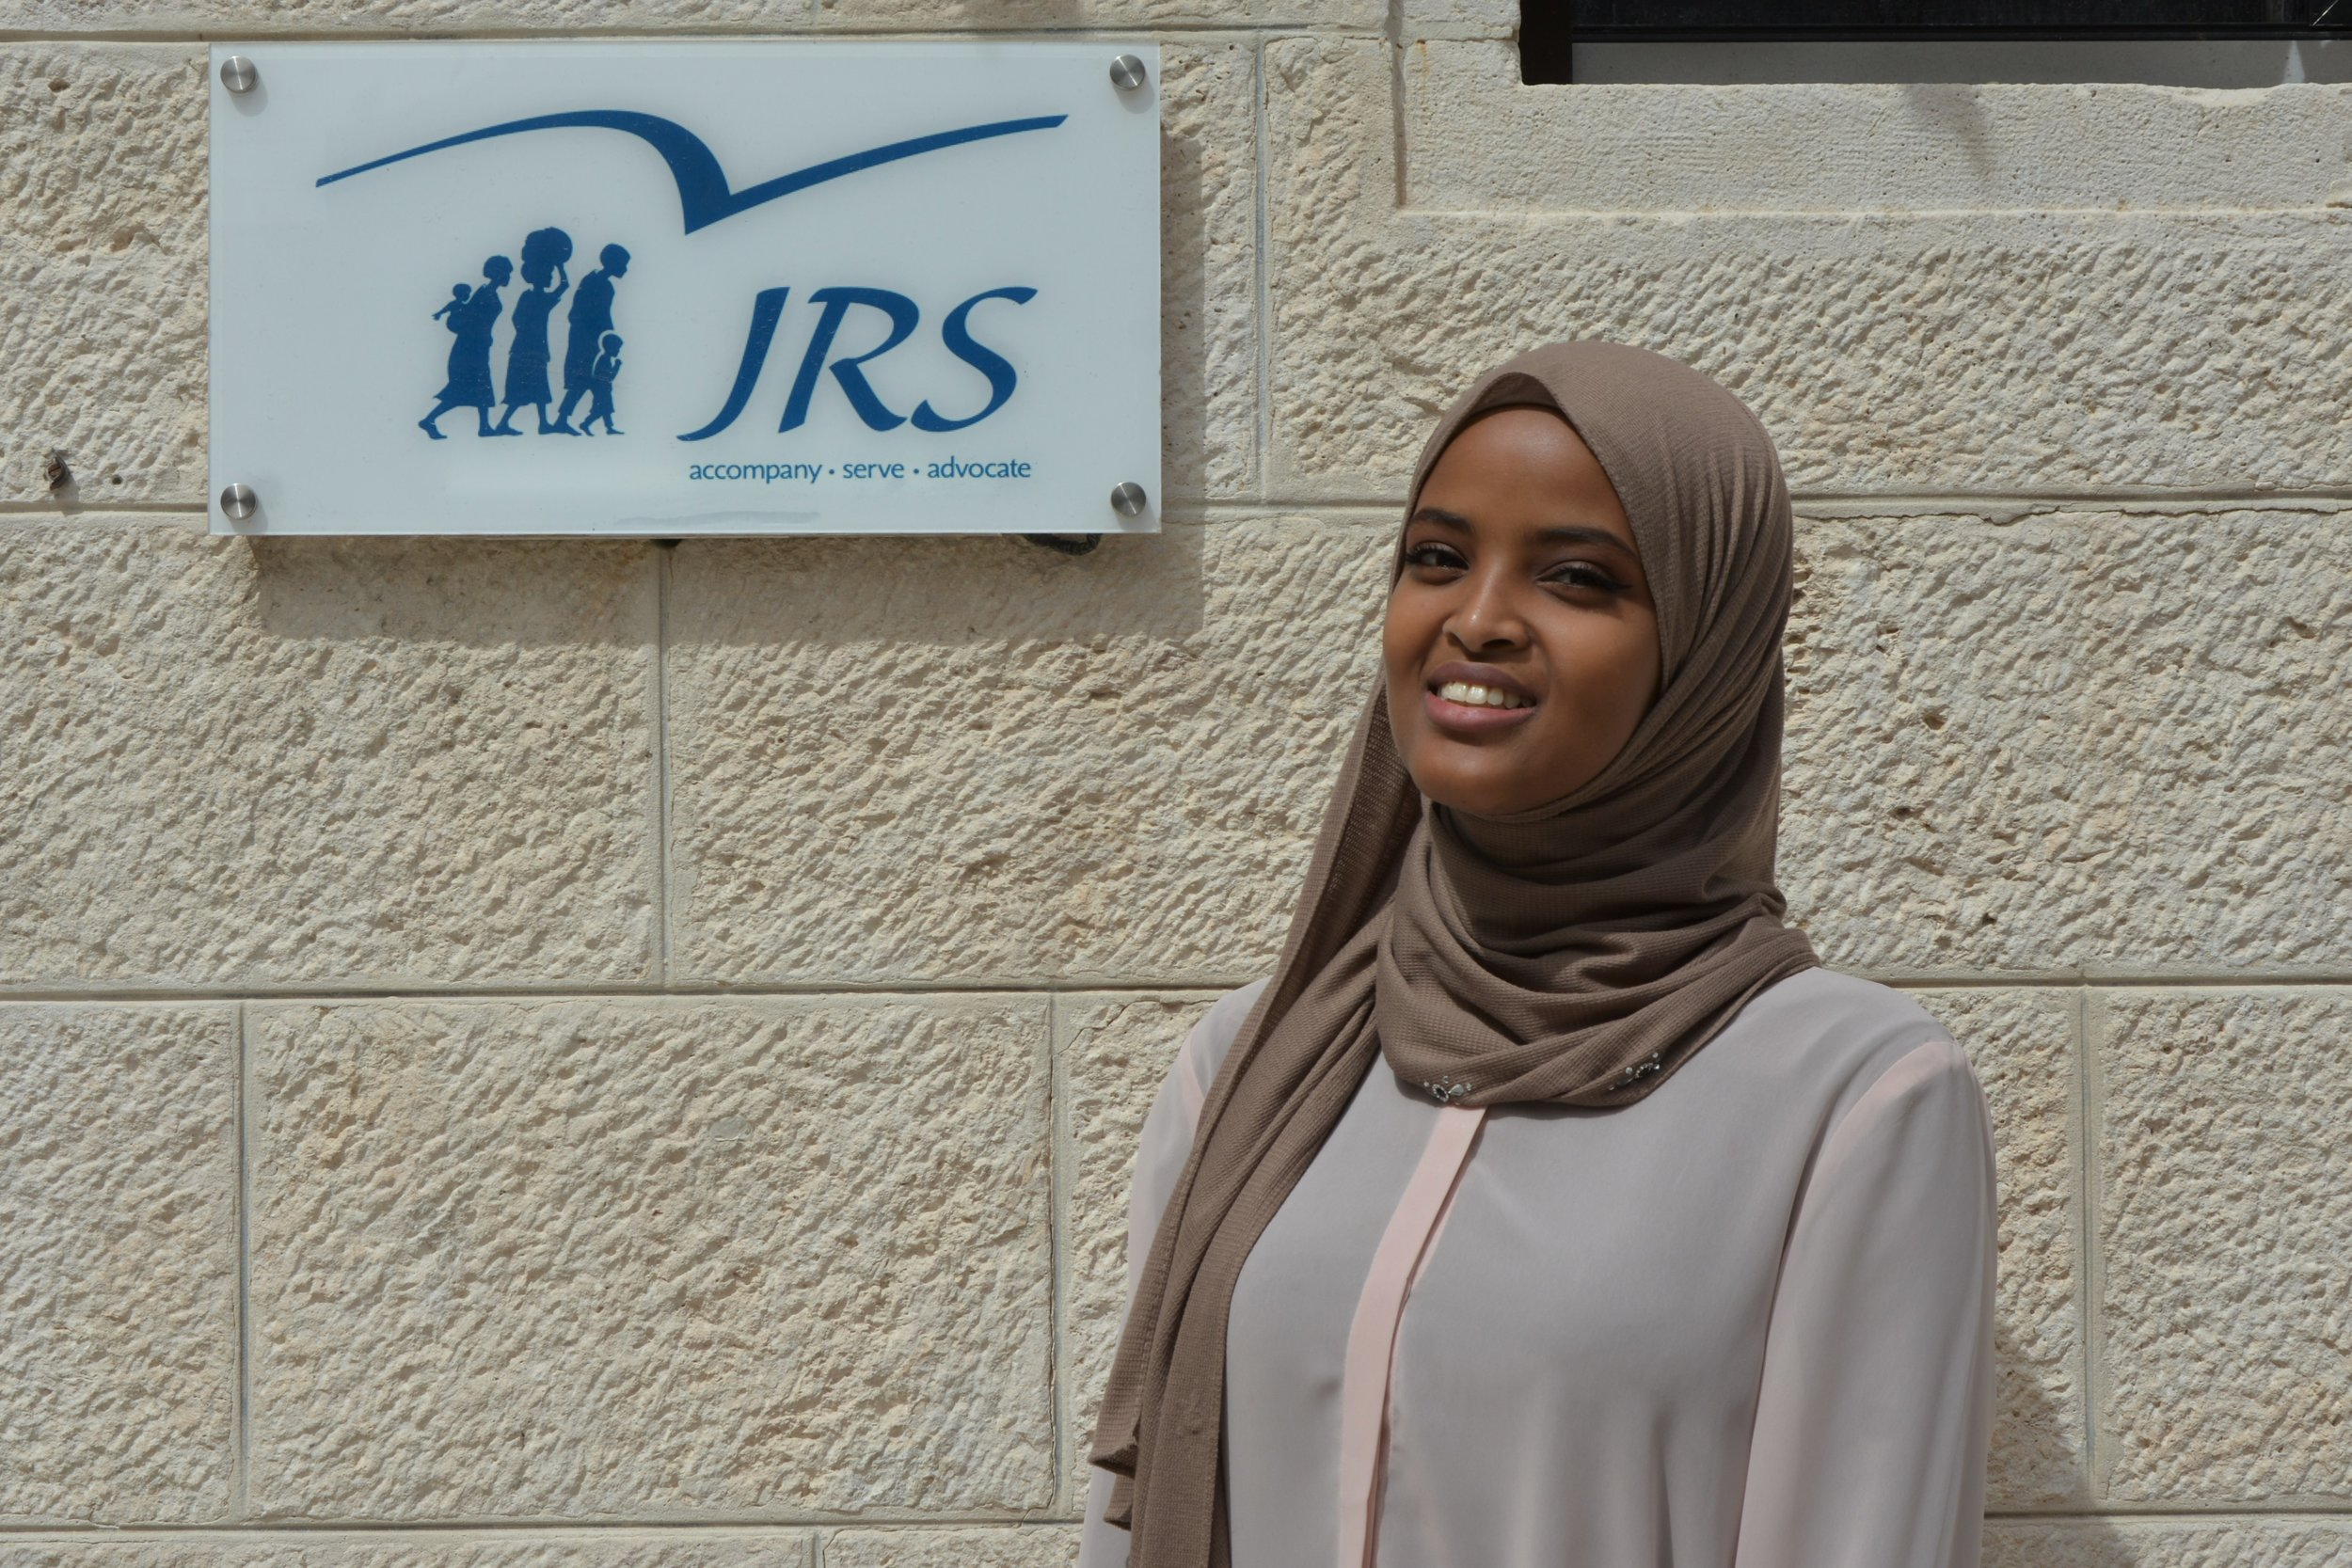 Fowzia, originally from Somalia, is a former student in a JRS camp who now volunteers as an English teacher (photo by JRS International)